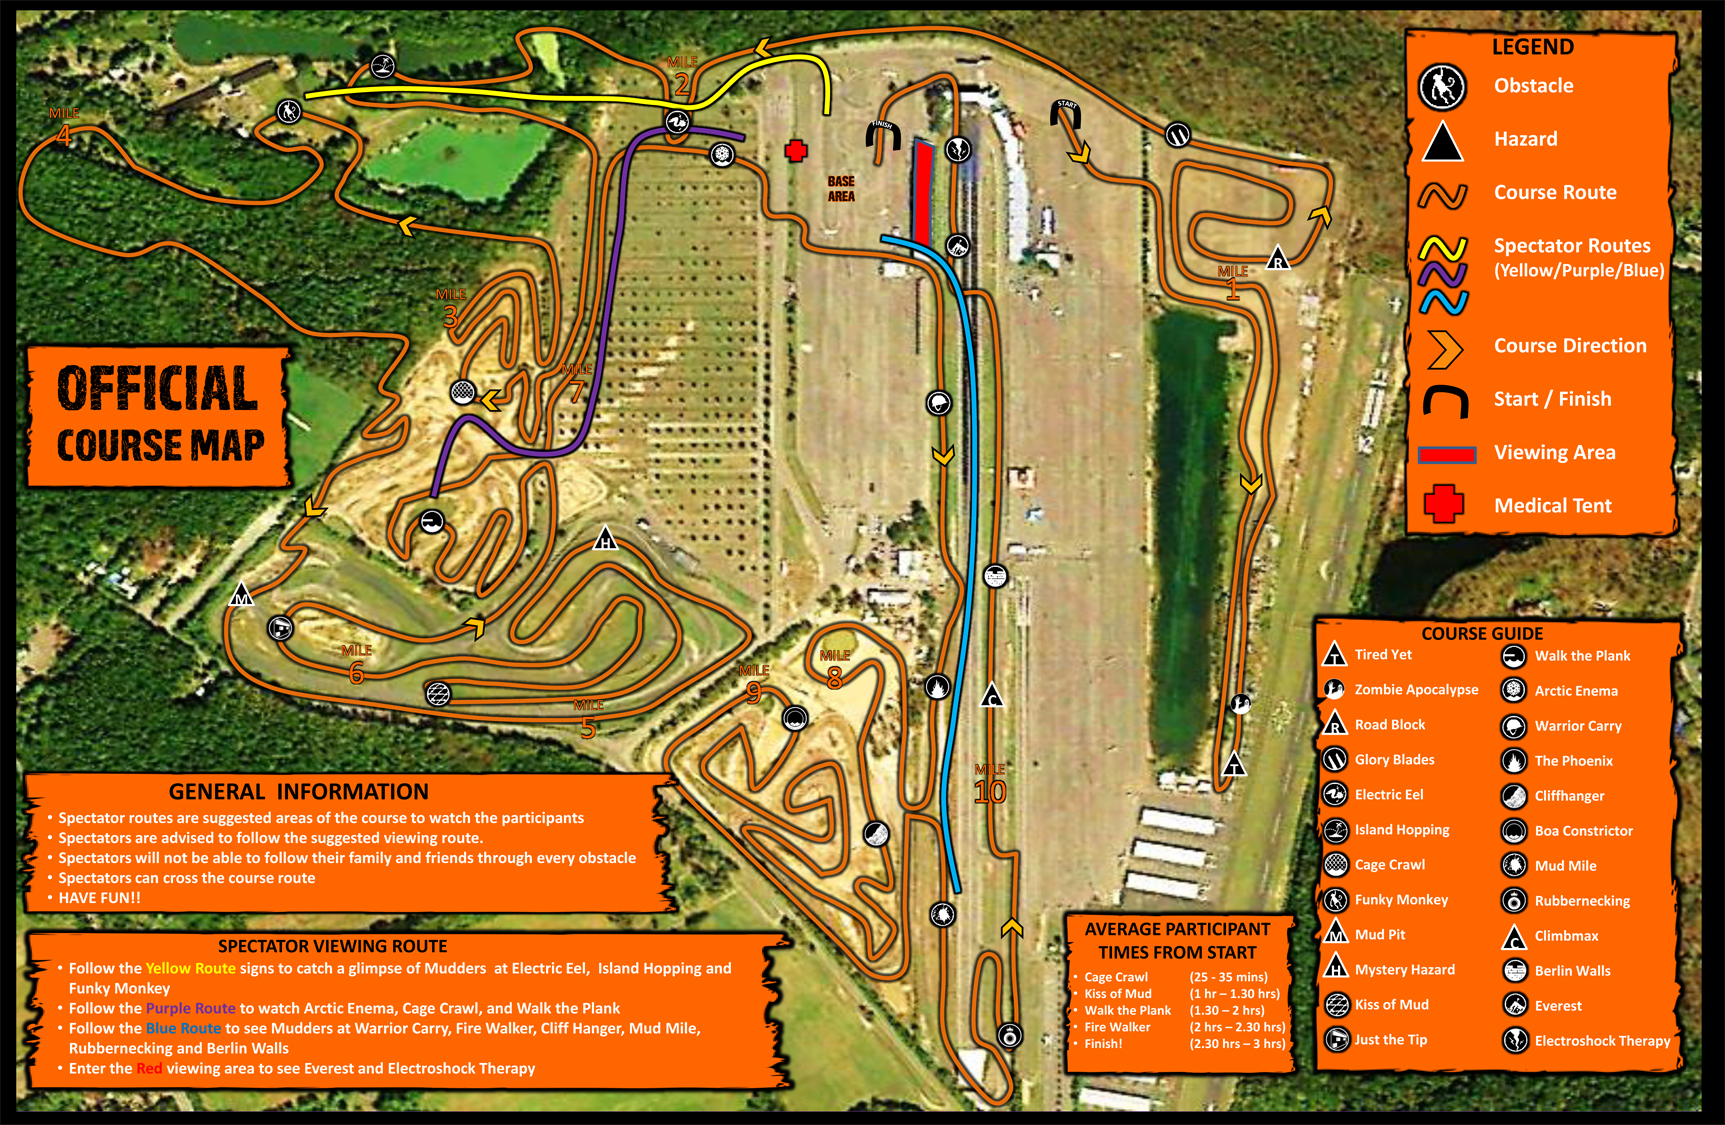 The Official Course Map! (click to enlarge)